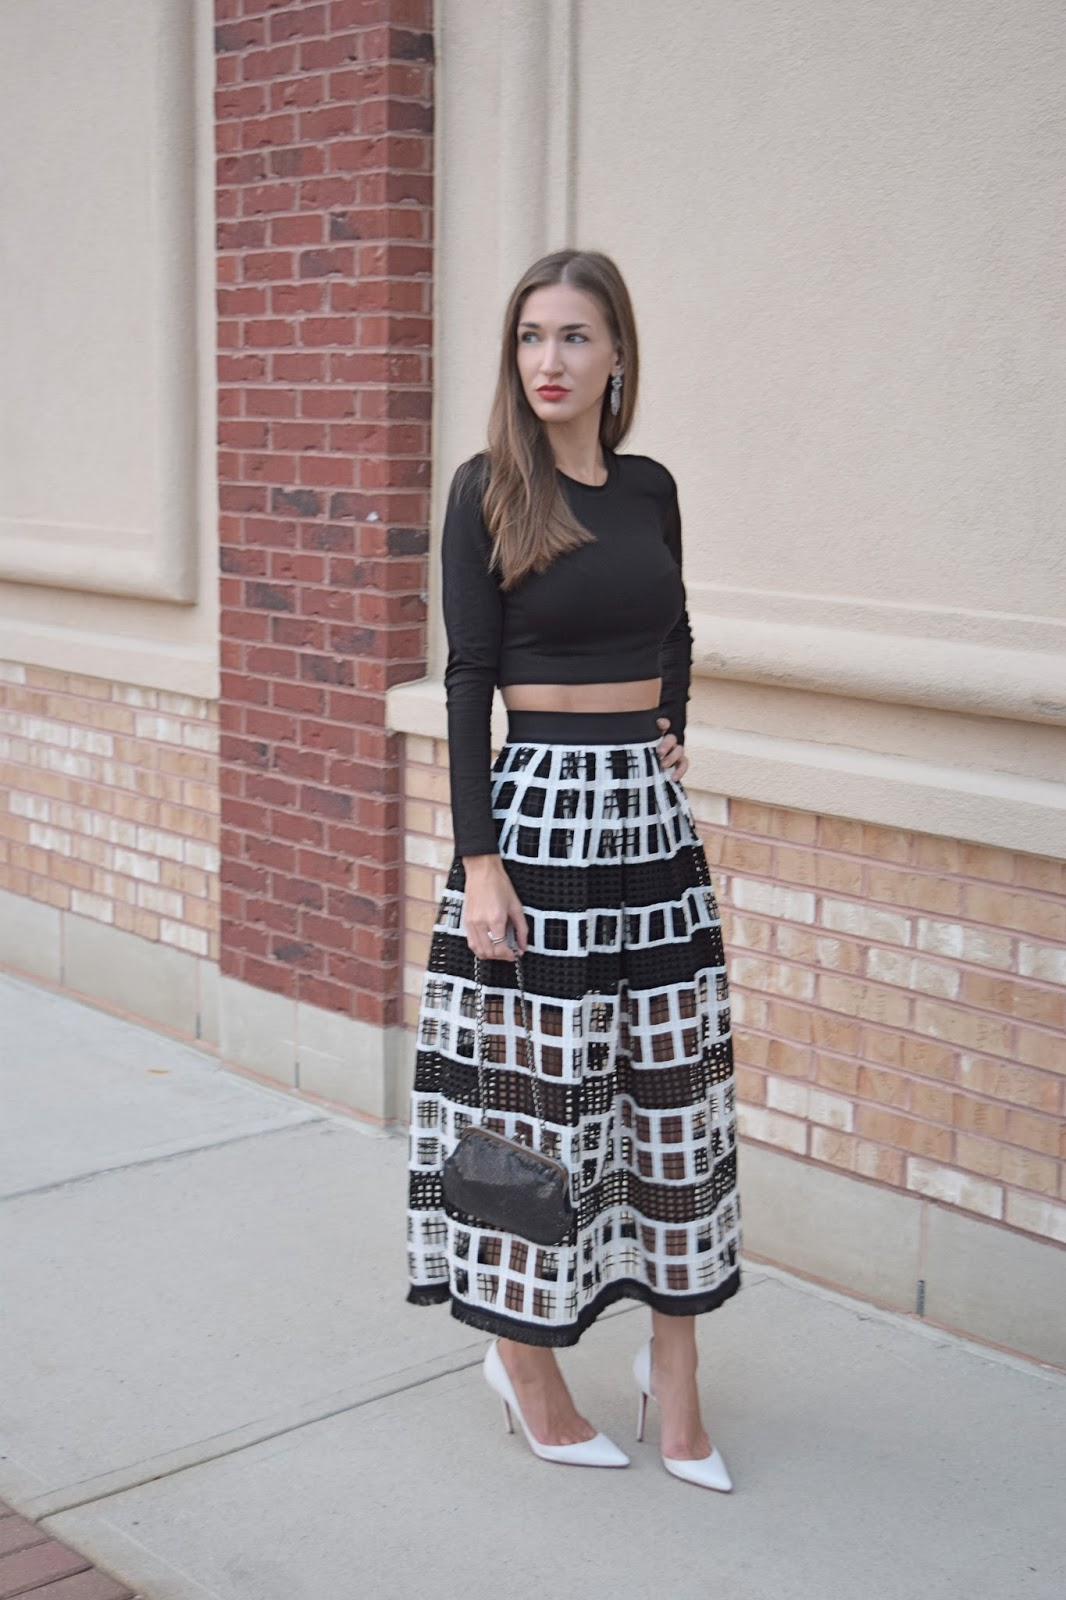 Wearing Alexis Albina Mesh knit midi skirt, Alexis Black long sleeve crop top, Jade's Closet